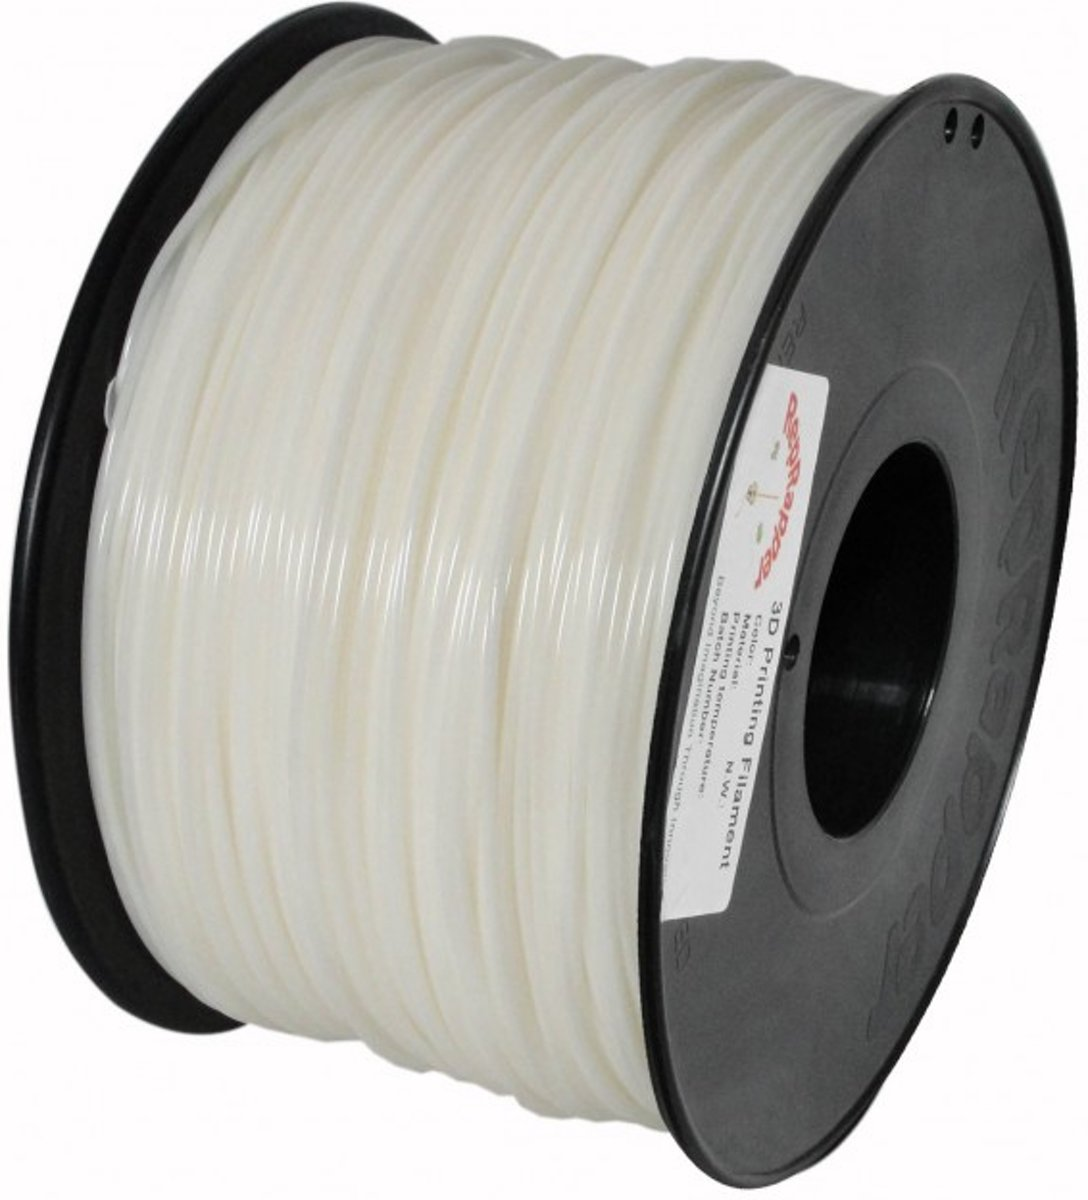 1.75mm naturel ABS filament